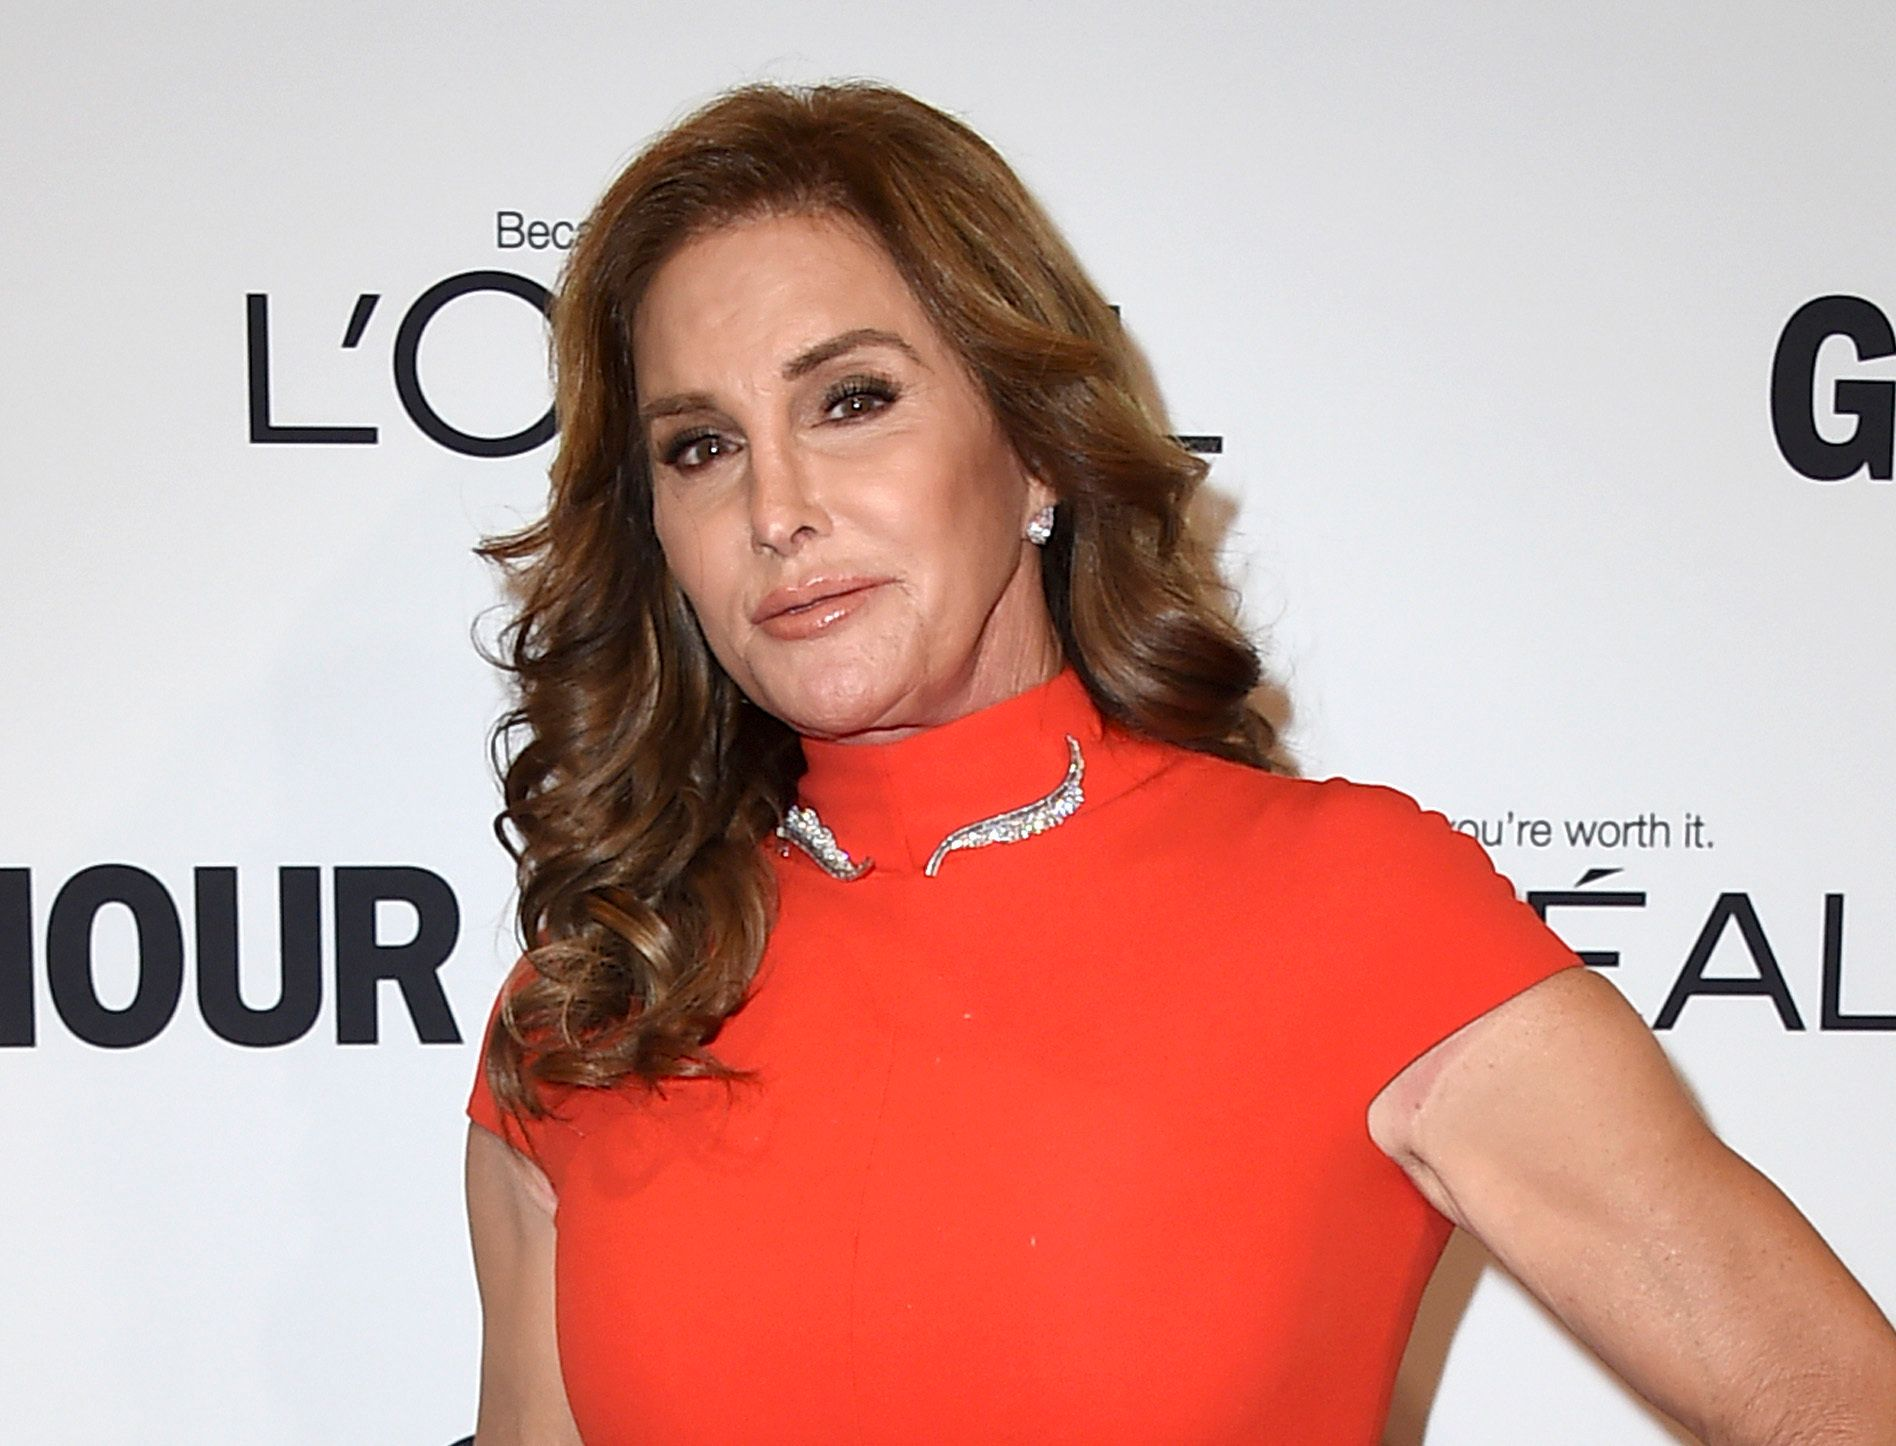 Caitlyn Jenner Publicly Withdraws Support For Trump, Admitting: 'I Was